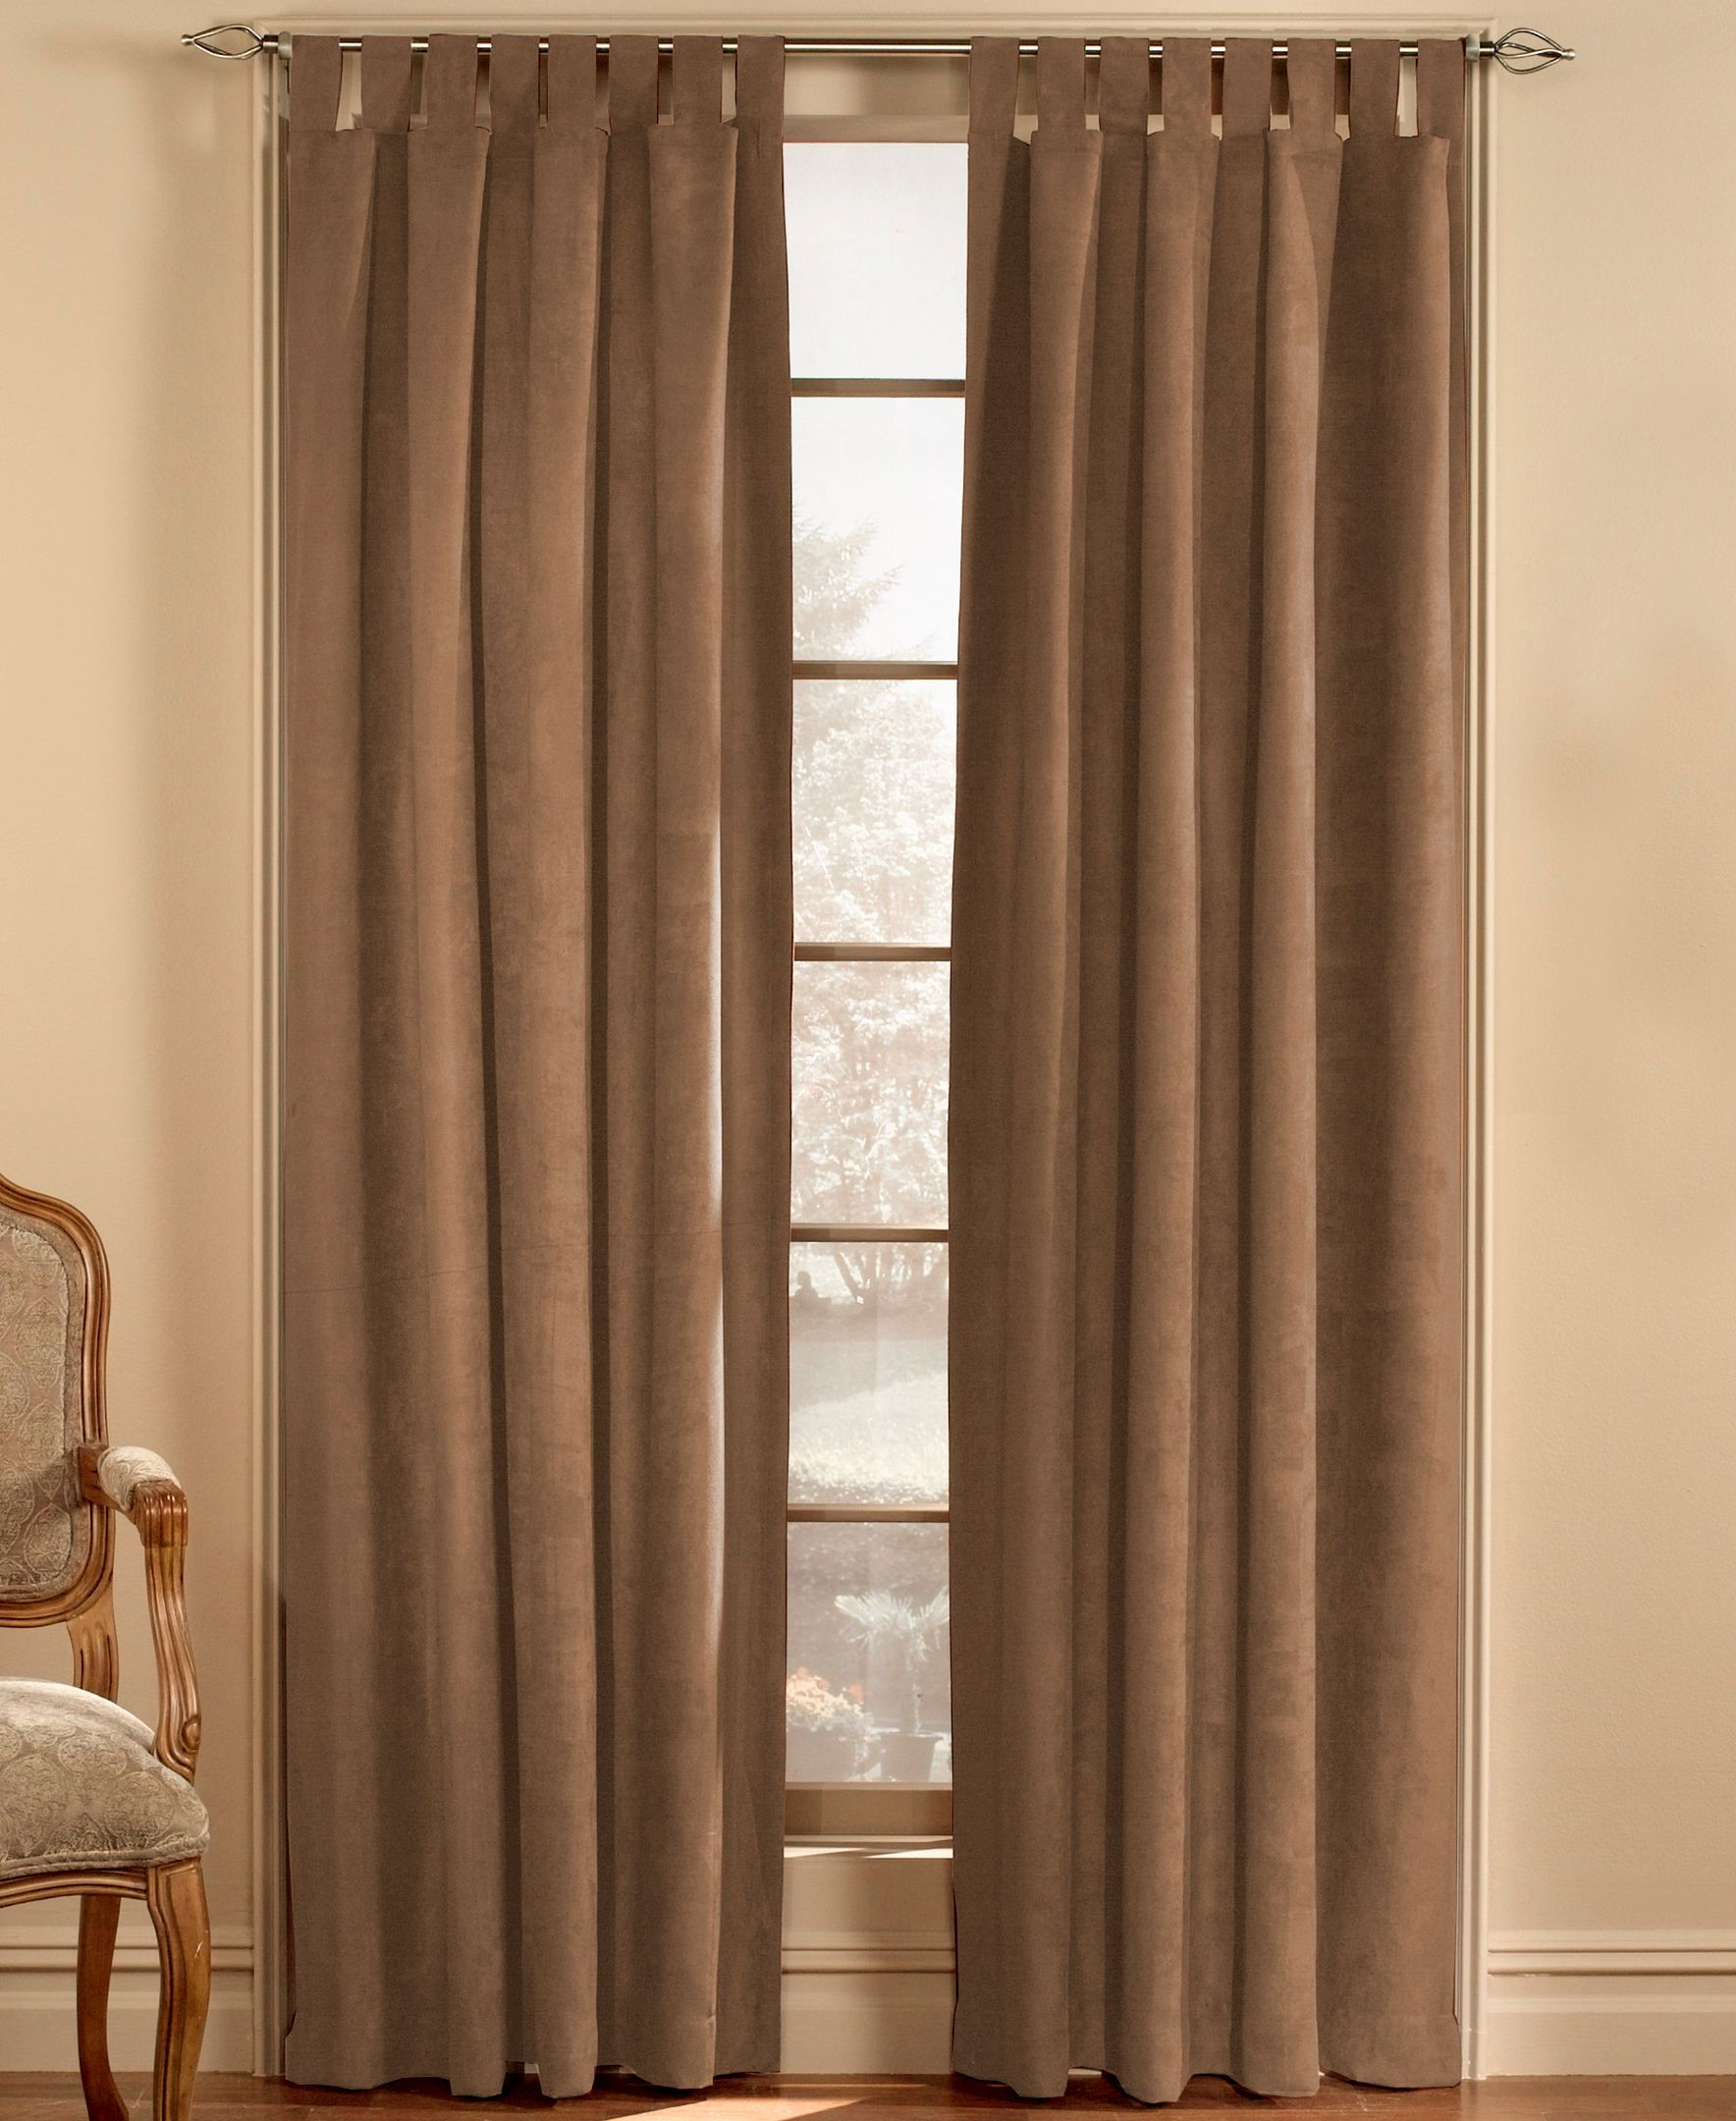 Chf Loftstyle Faux Suede 50 X 95 Panel Wide Curtains Panel